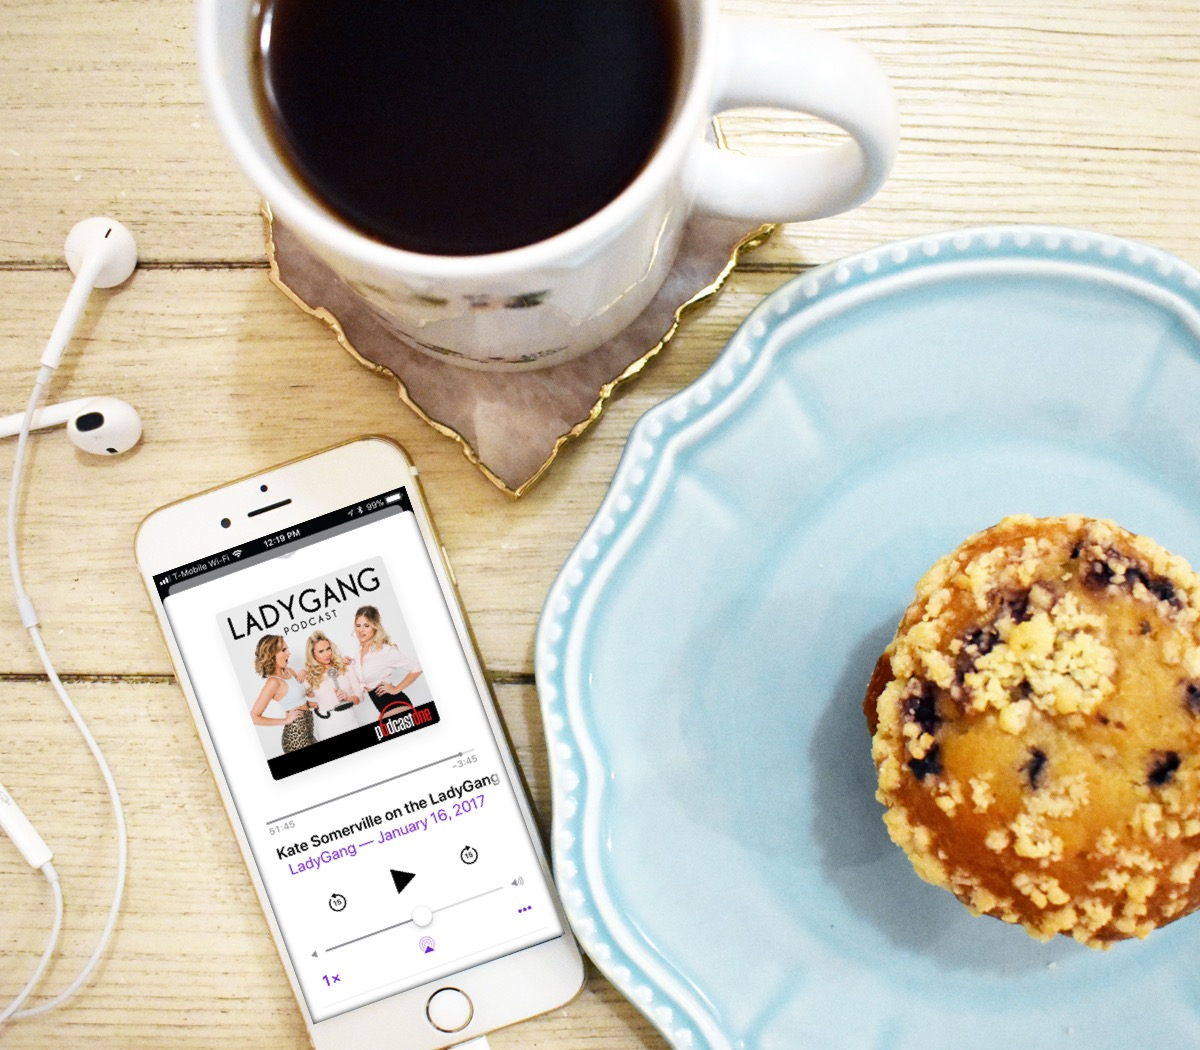 The Lady Gang Podcast by Bumble and Bustle2